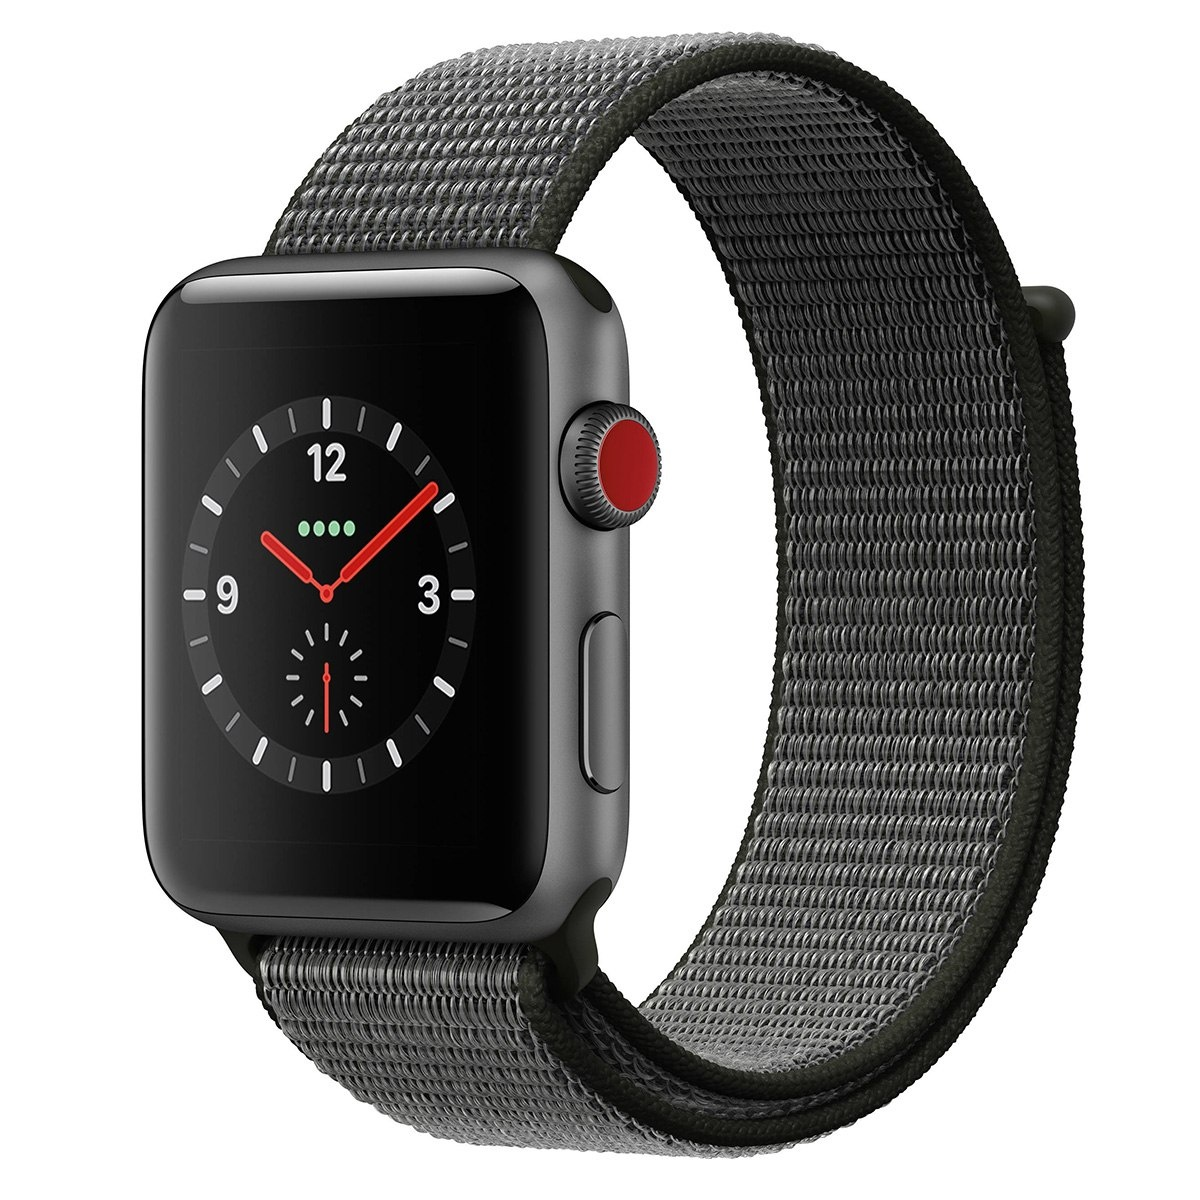 Apple Watch Series 3 (42 mm)